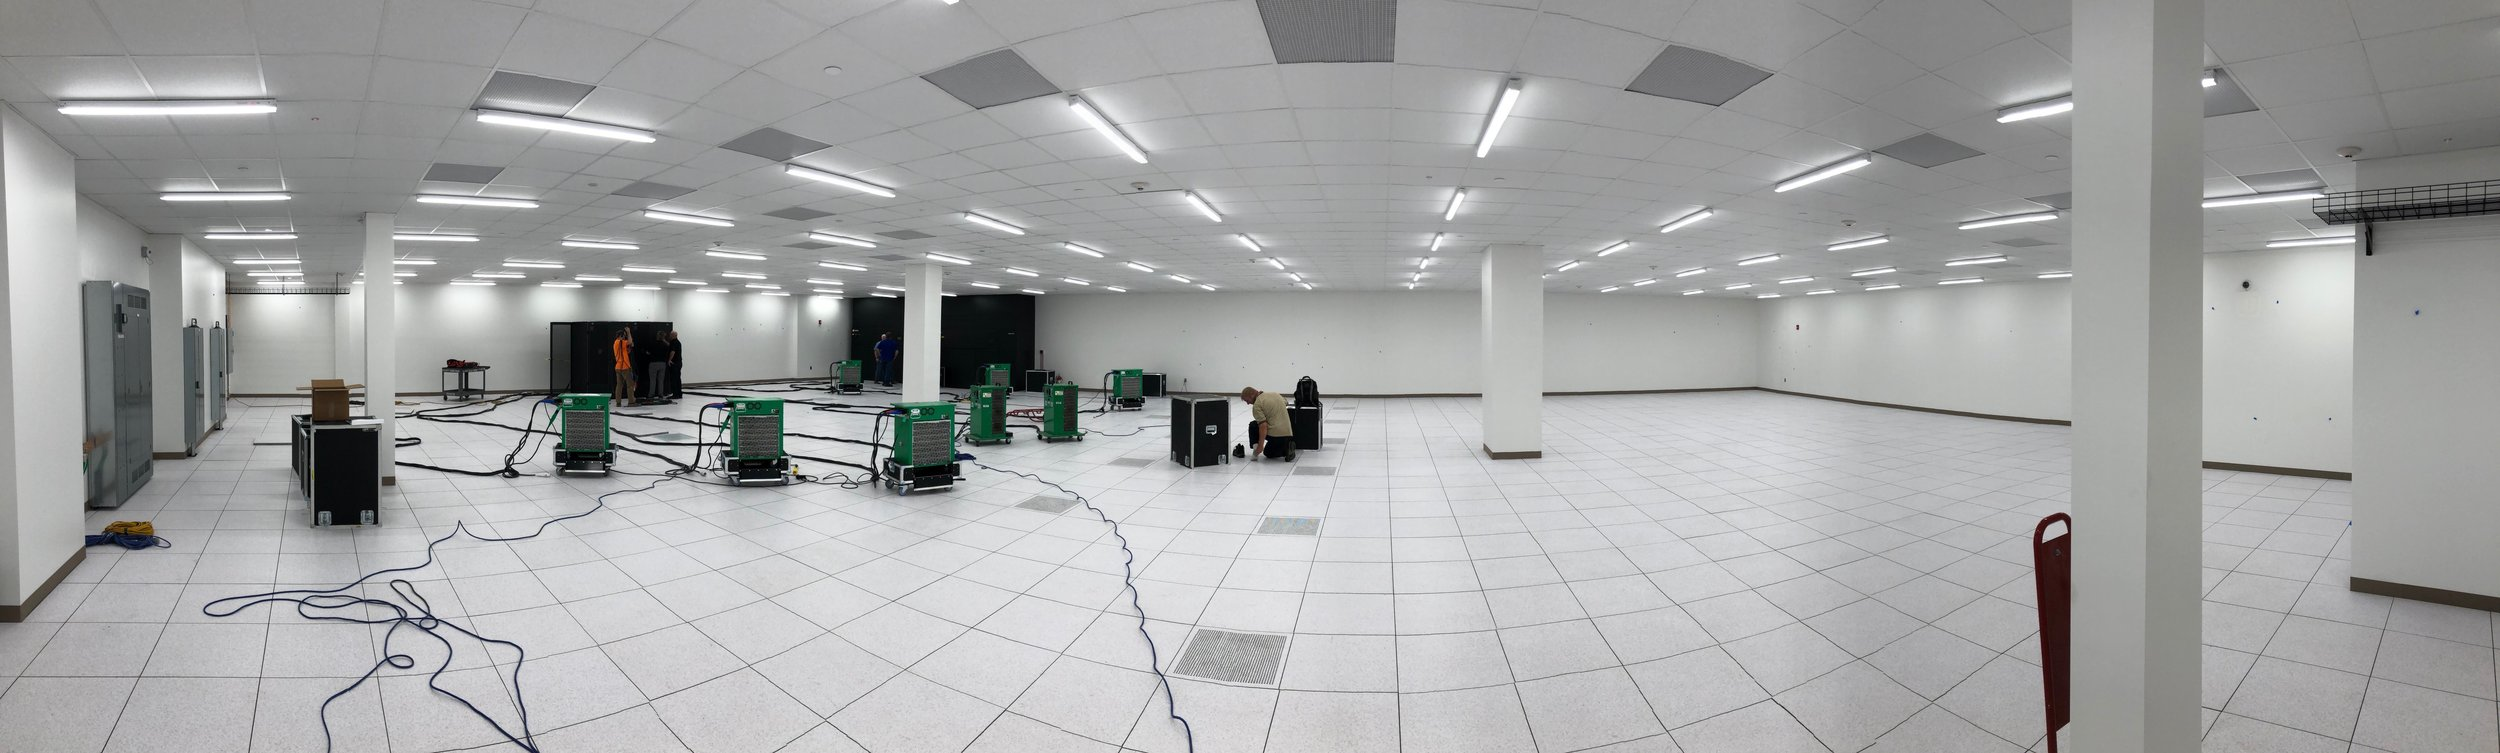 Week of August 5th - August 9th, 2019   800 kW of Resistive Load Banks installed for teting of UPS , PDU's and Cooling. Suite tested to 110 % of design